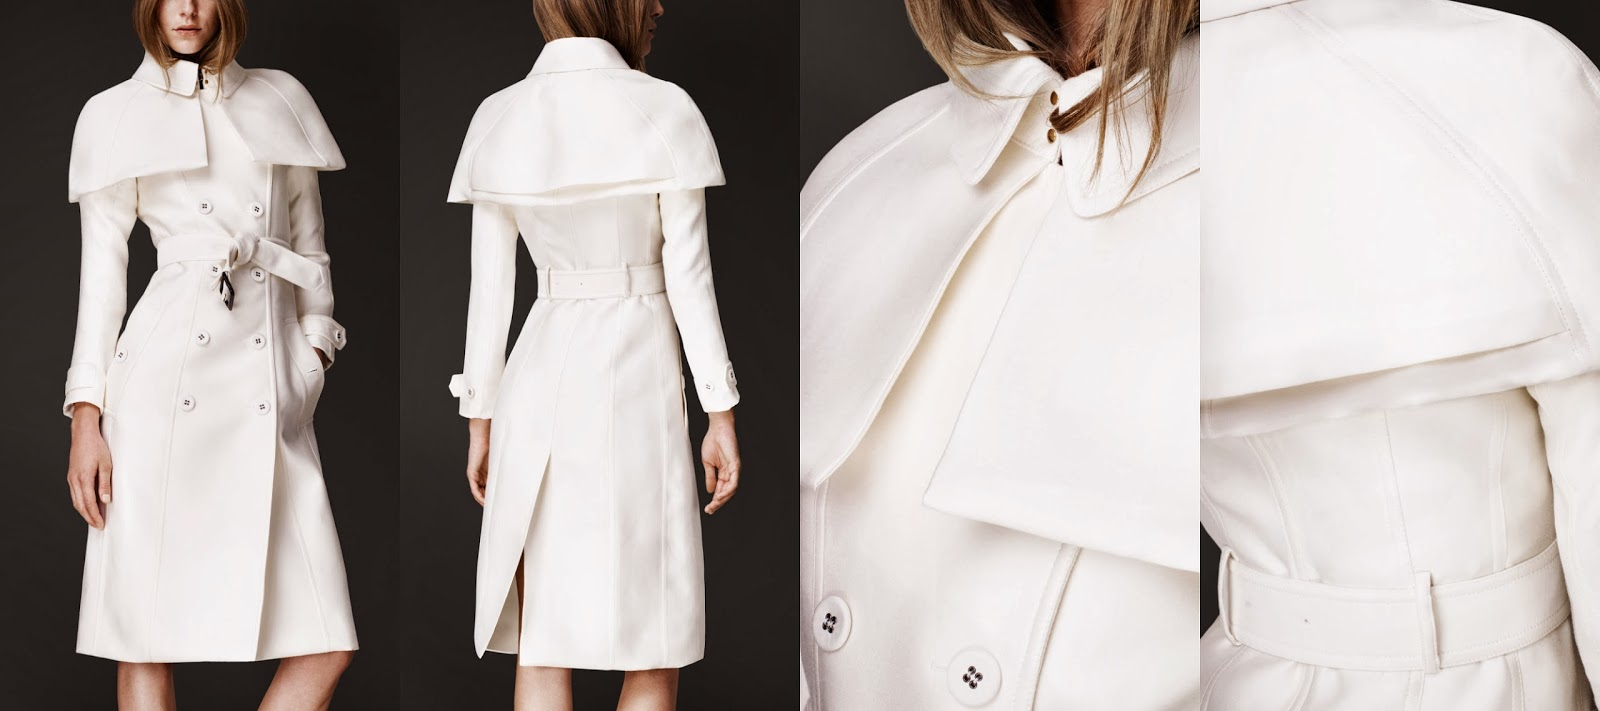 burberry-prorsum-white-double-duchess-caped-trench-coat-product-1-5925712-456672843-horz